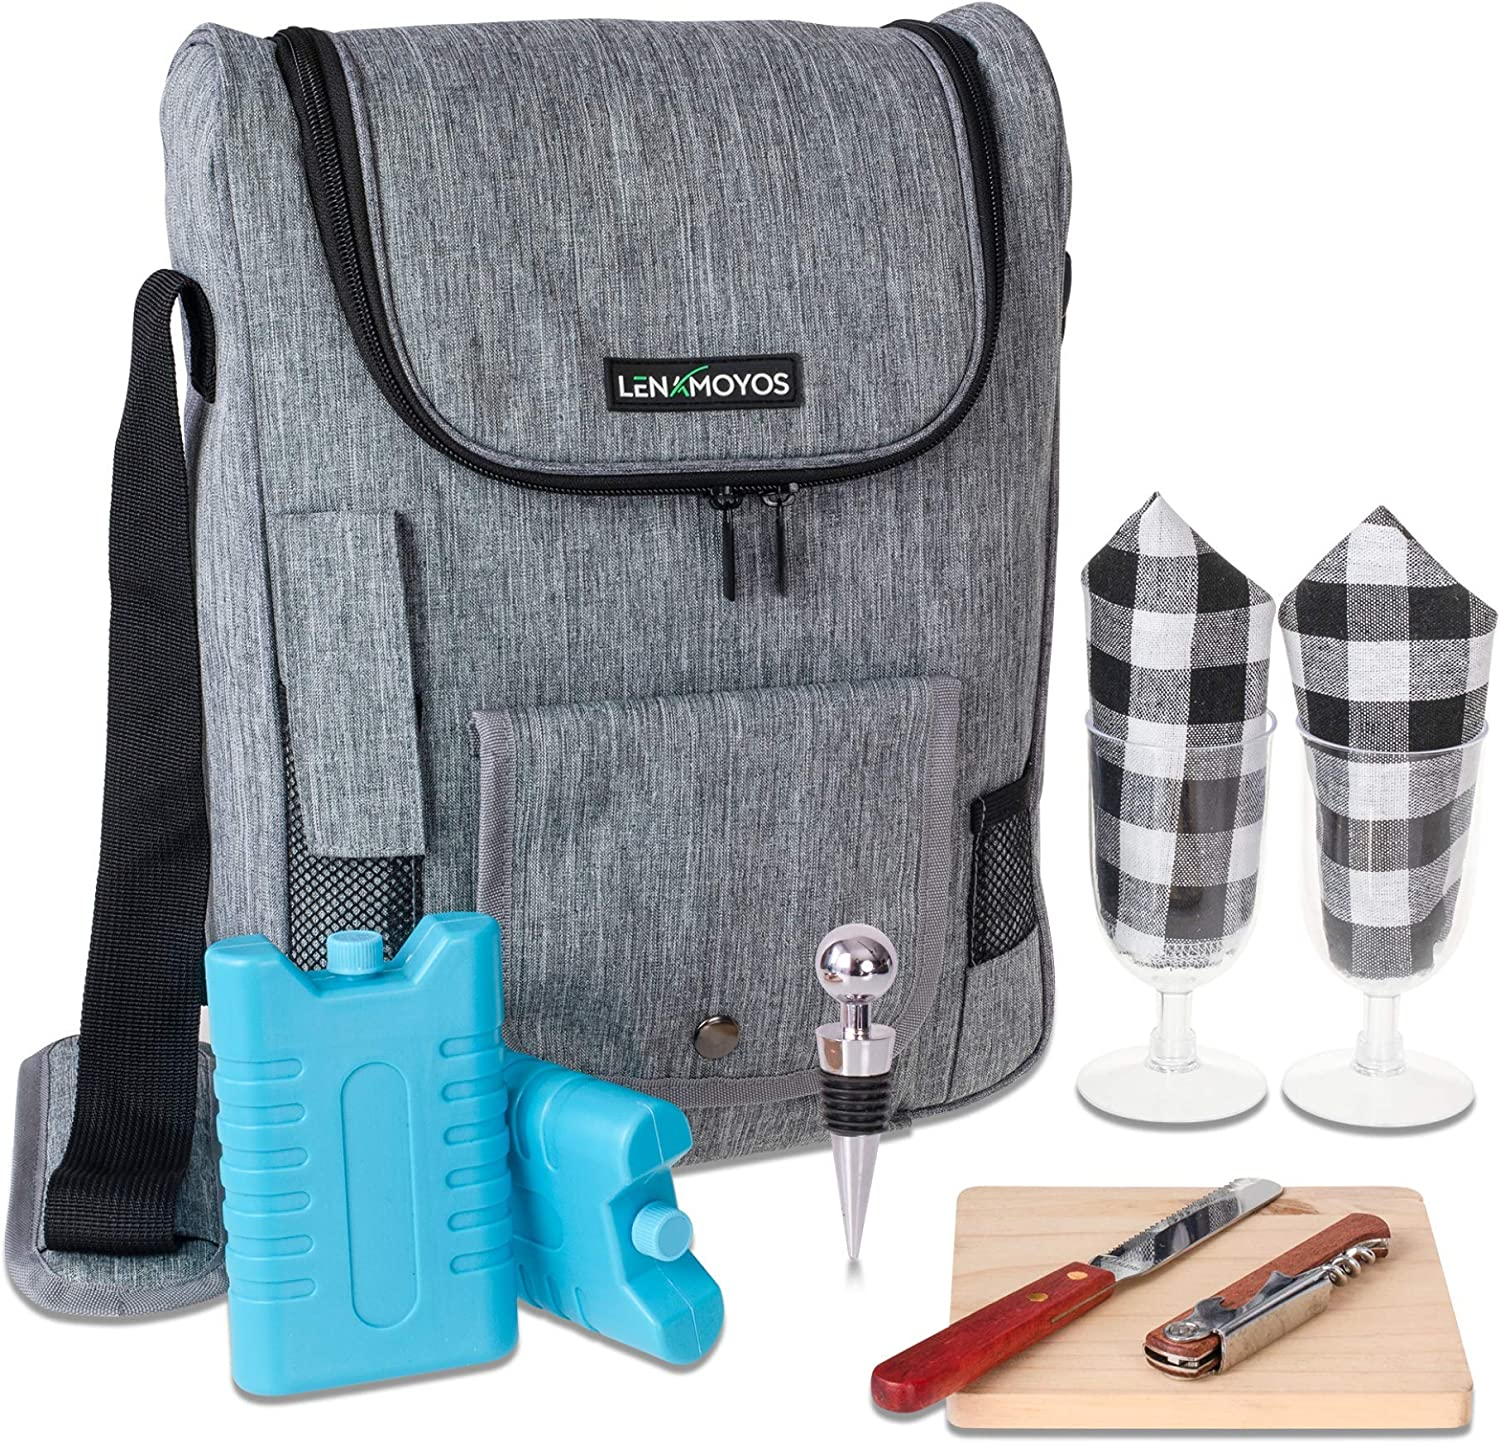 Travel Wine Cooler Tote Bag - Insulated Portable 2 Wine Carrying Bag - Cheese Waterproof Canvas Carrier Bag Set with Kit - Shoulder Strap Great for Picnics and Outdoor Entertaining (Grey)